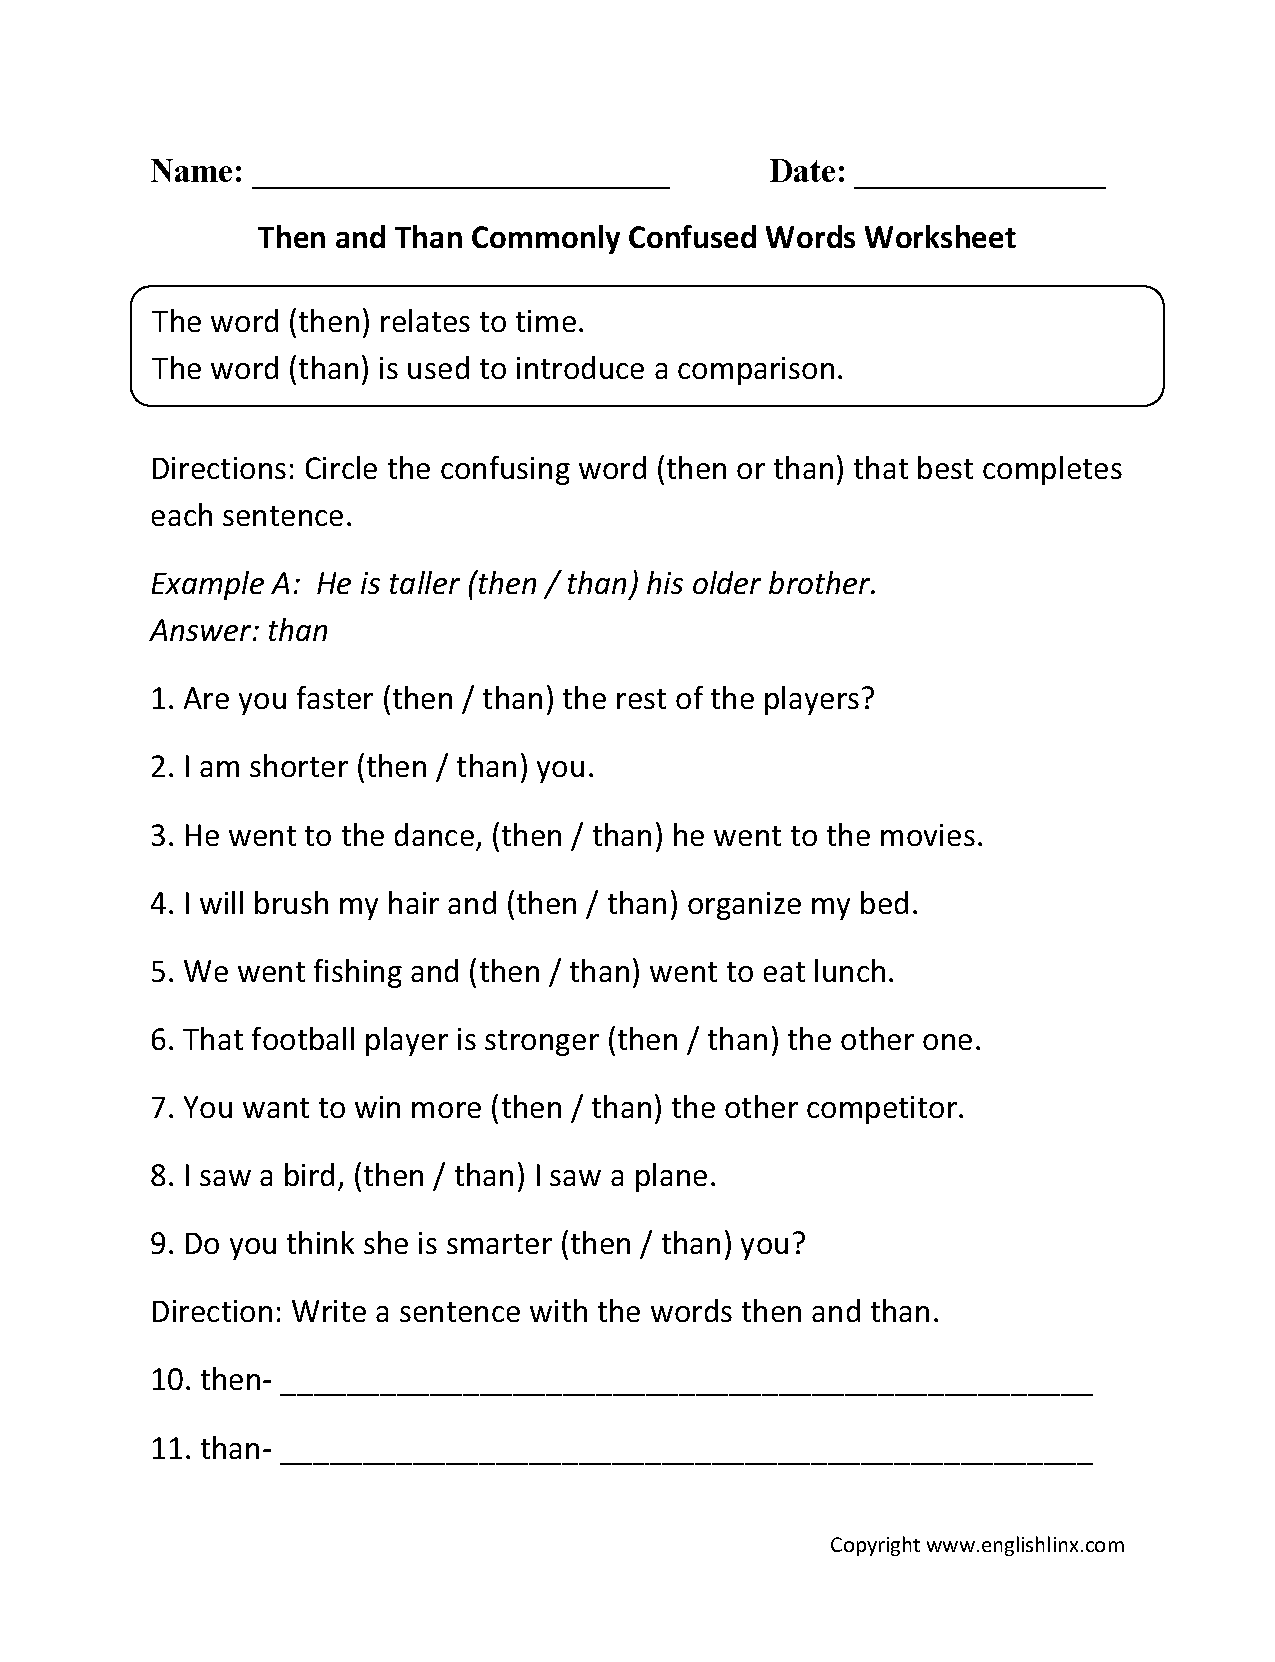 Word Usage Worksheets | Commonly Confused Words Worksheets